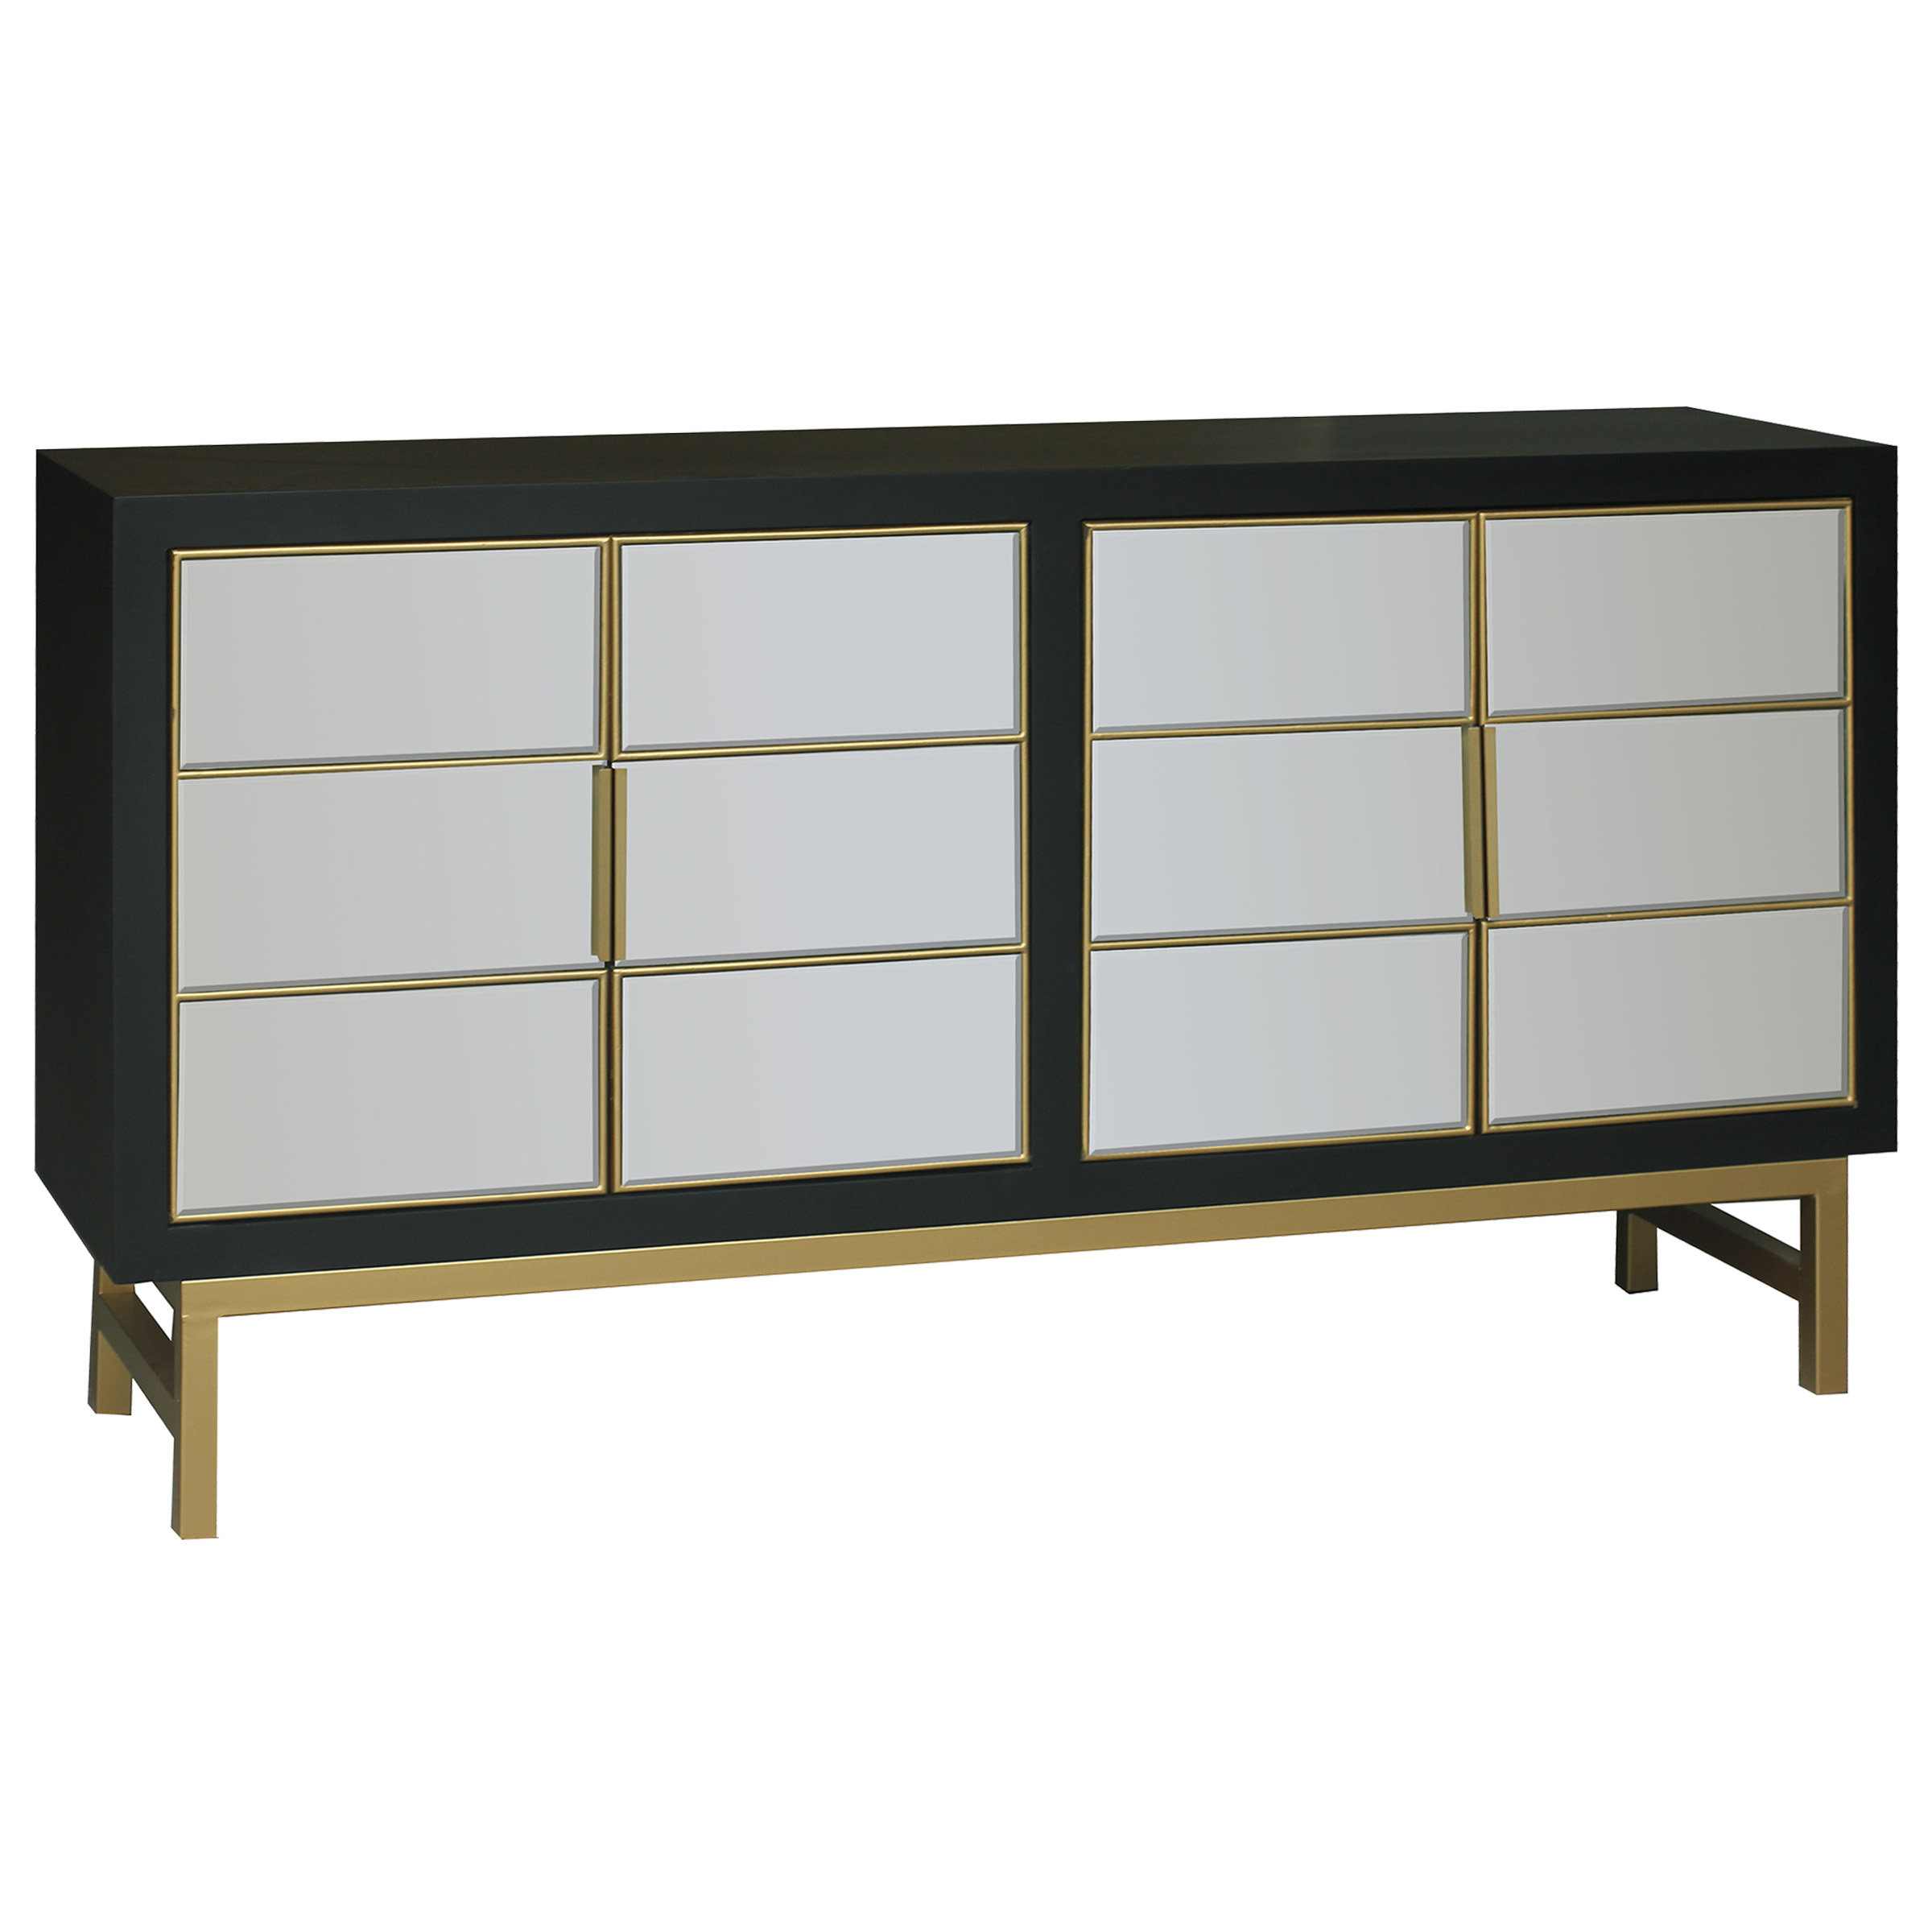 Wayfair Intended For Candace Door Credenzas (View 18 of 20)